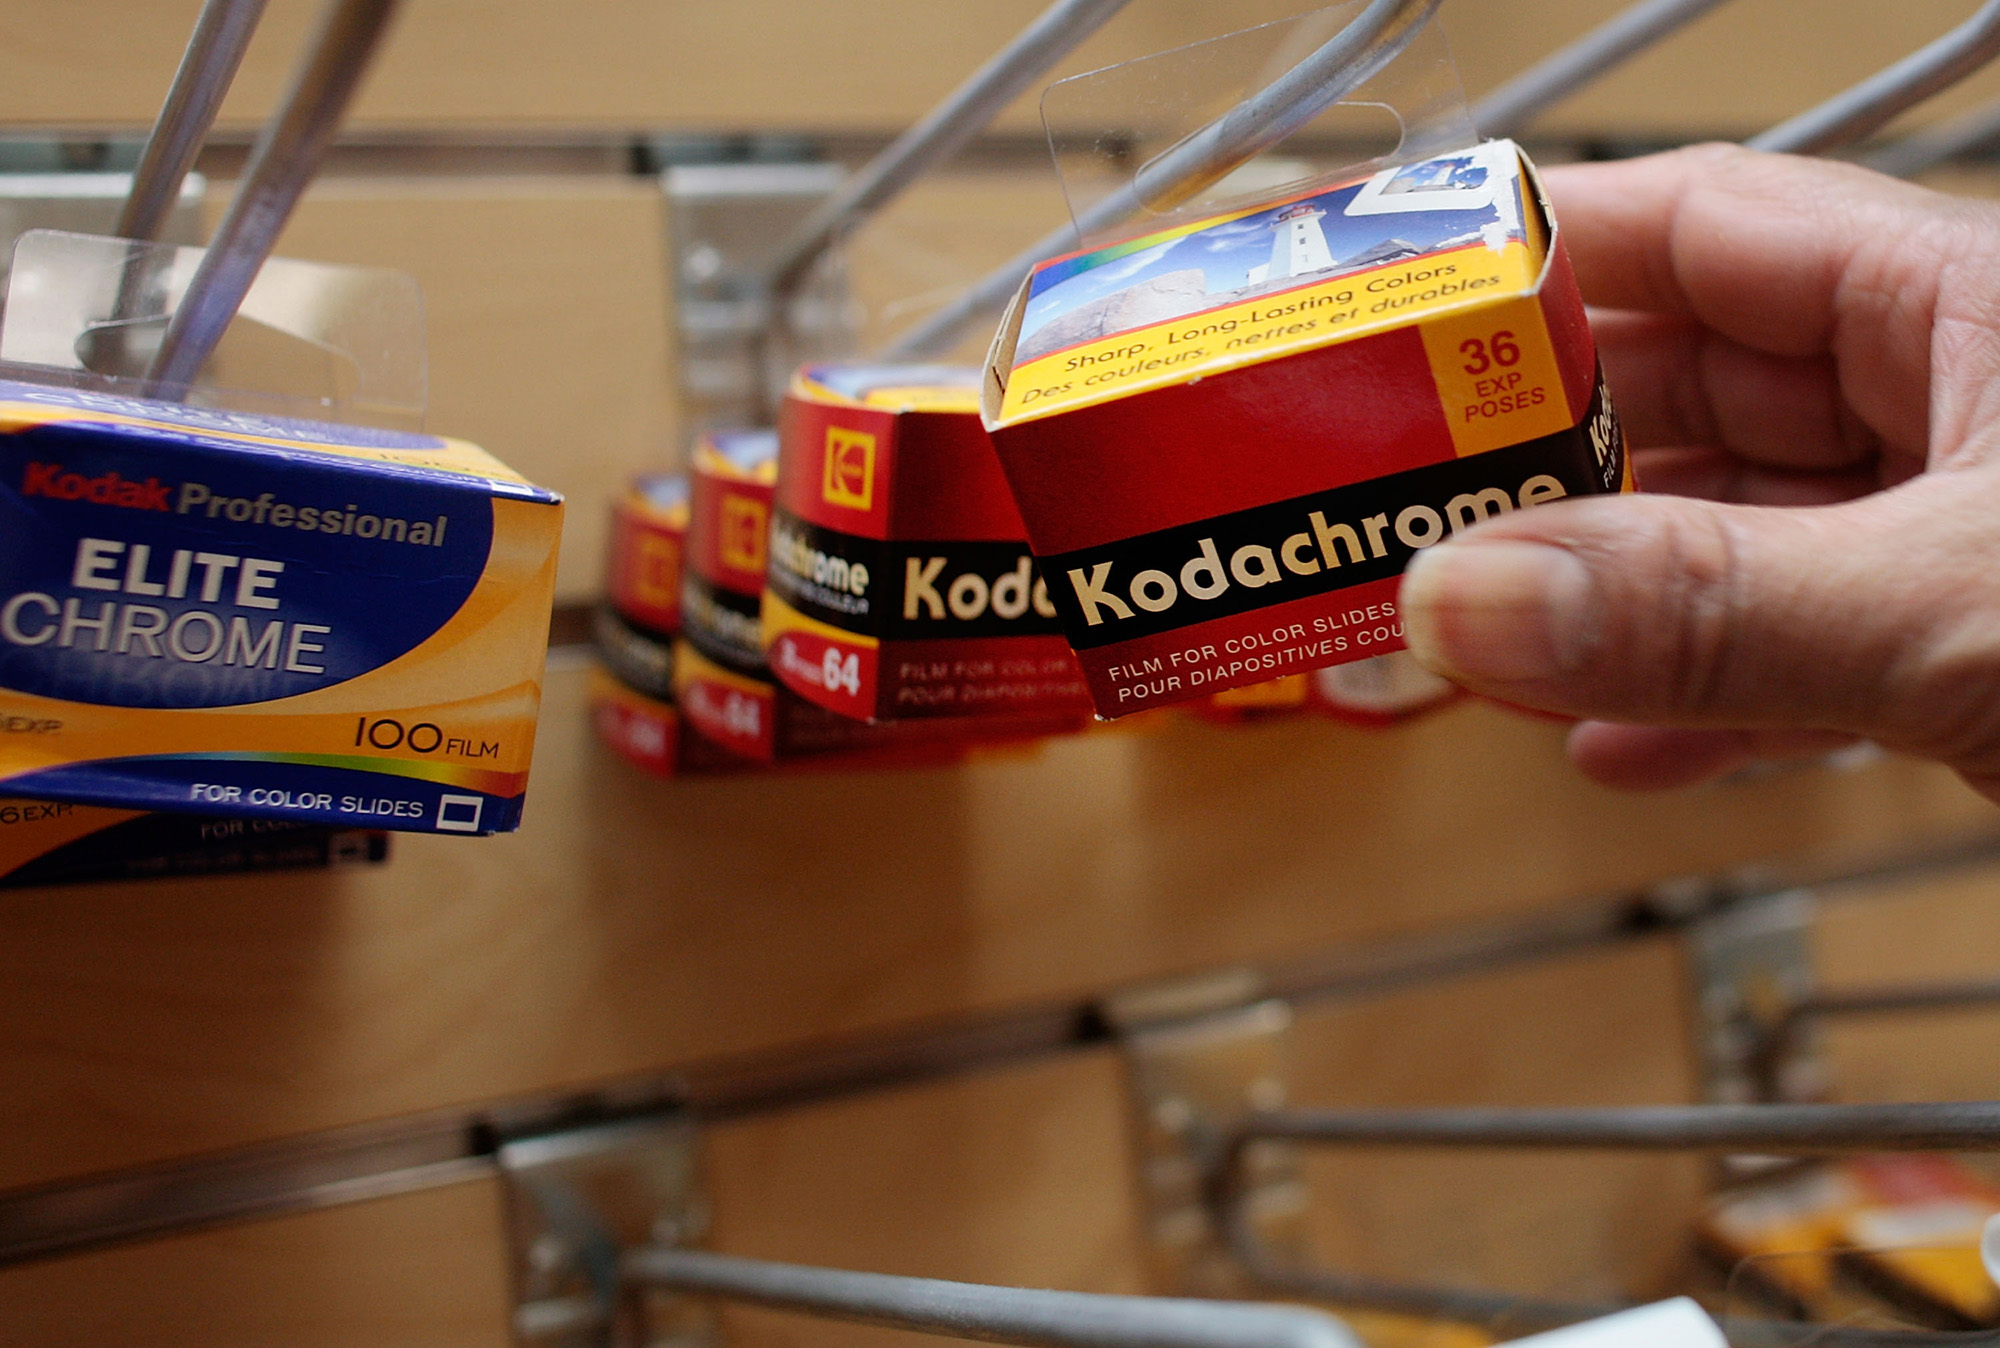 How Kodak went from photography pioneer to pharmaceutical producer